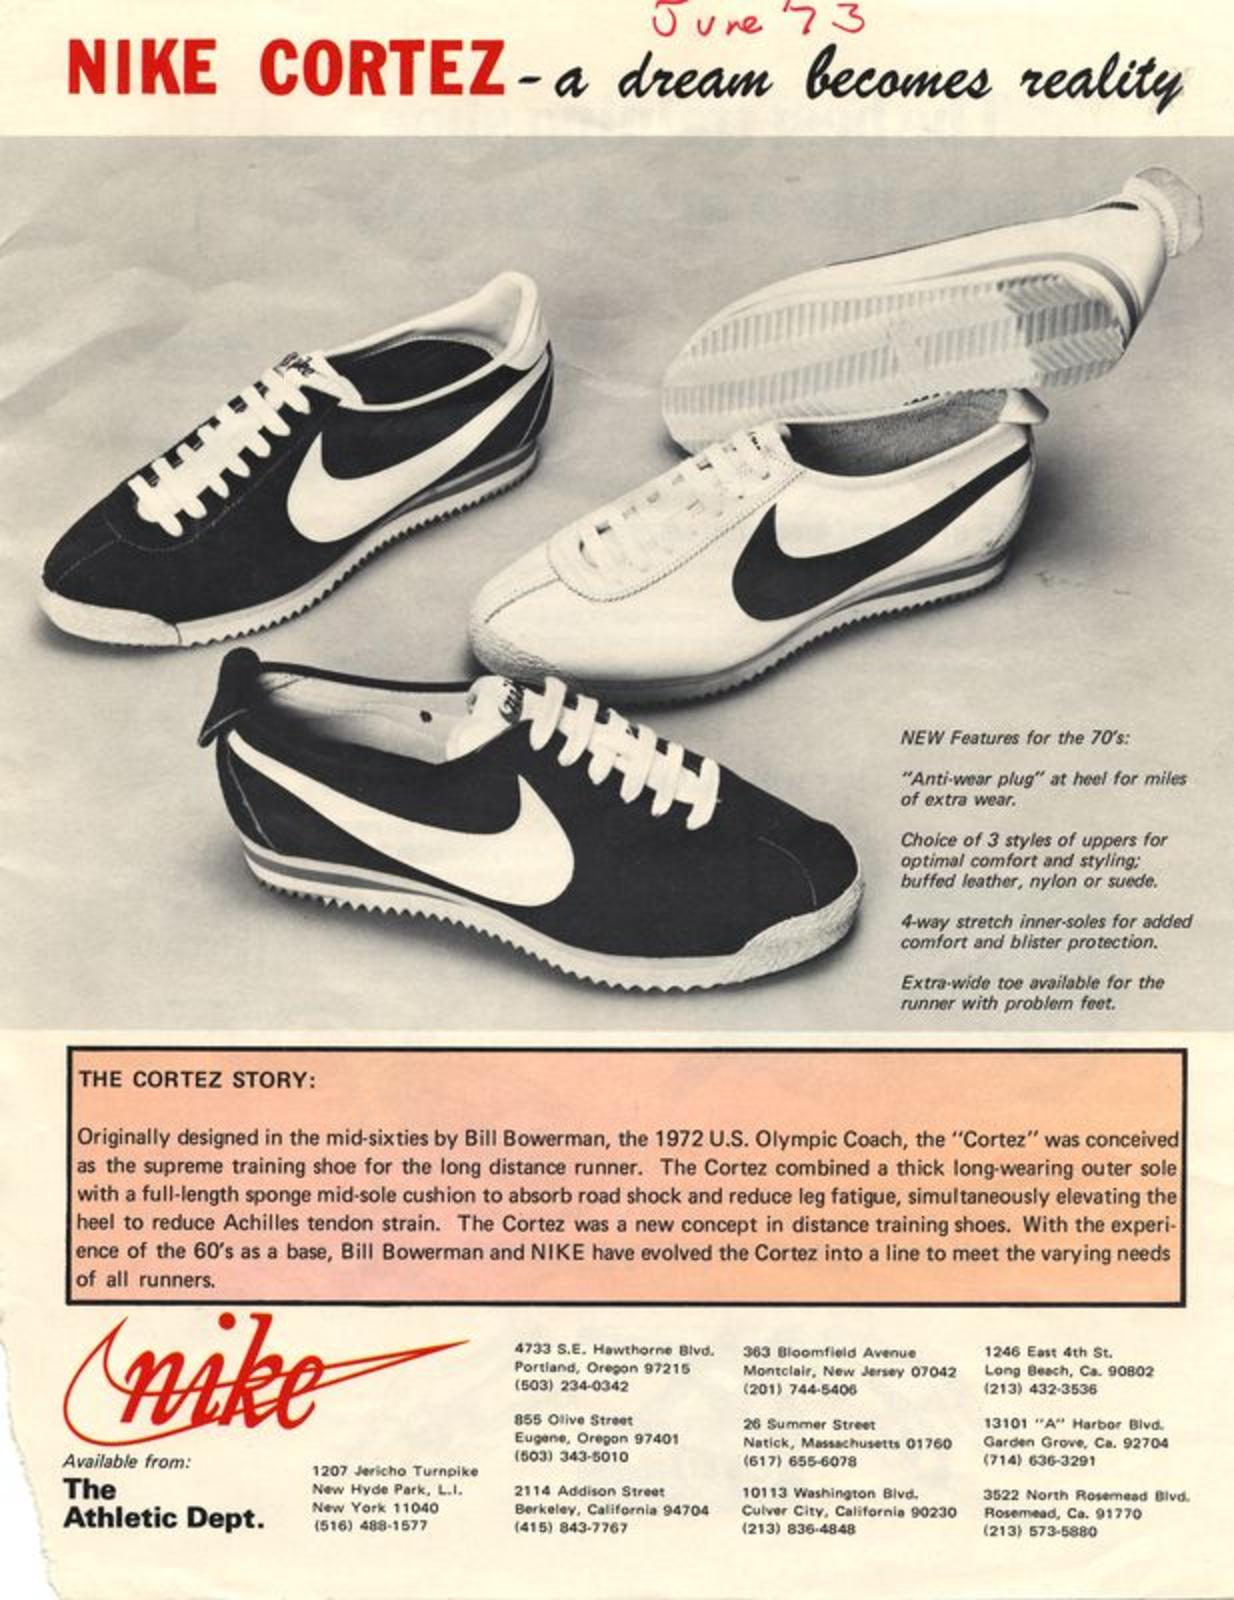 nike inc and sweatshops case study Case study analysis on nike corporation 1 introduction history nike is a major us footwear, clothing and sportswear supplier based in beaverton, oregon.